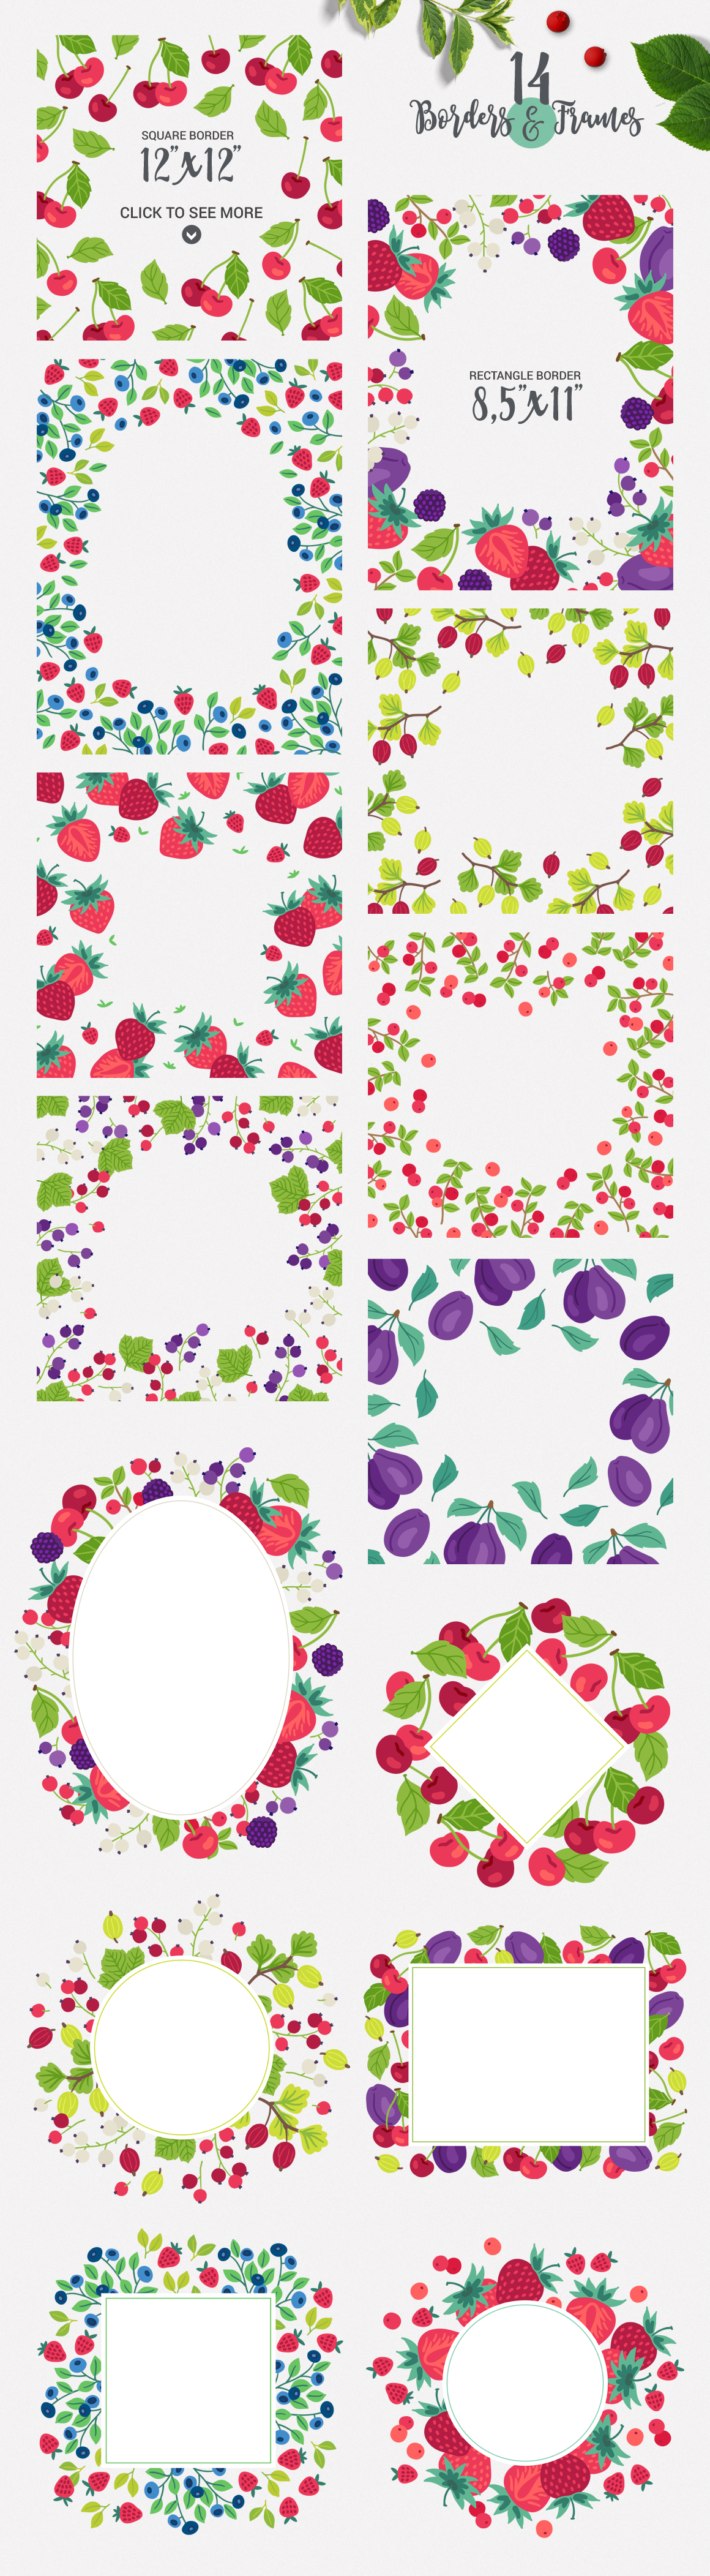 Juicy Berries Kit example image 4